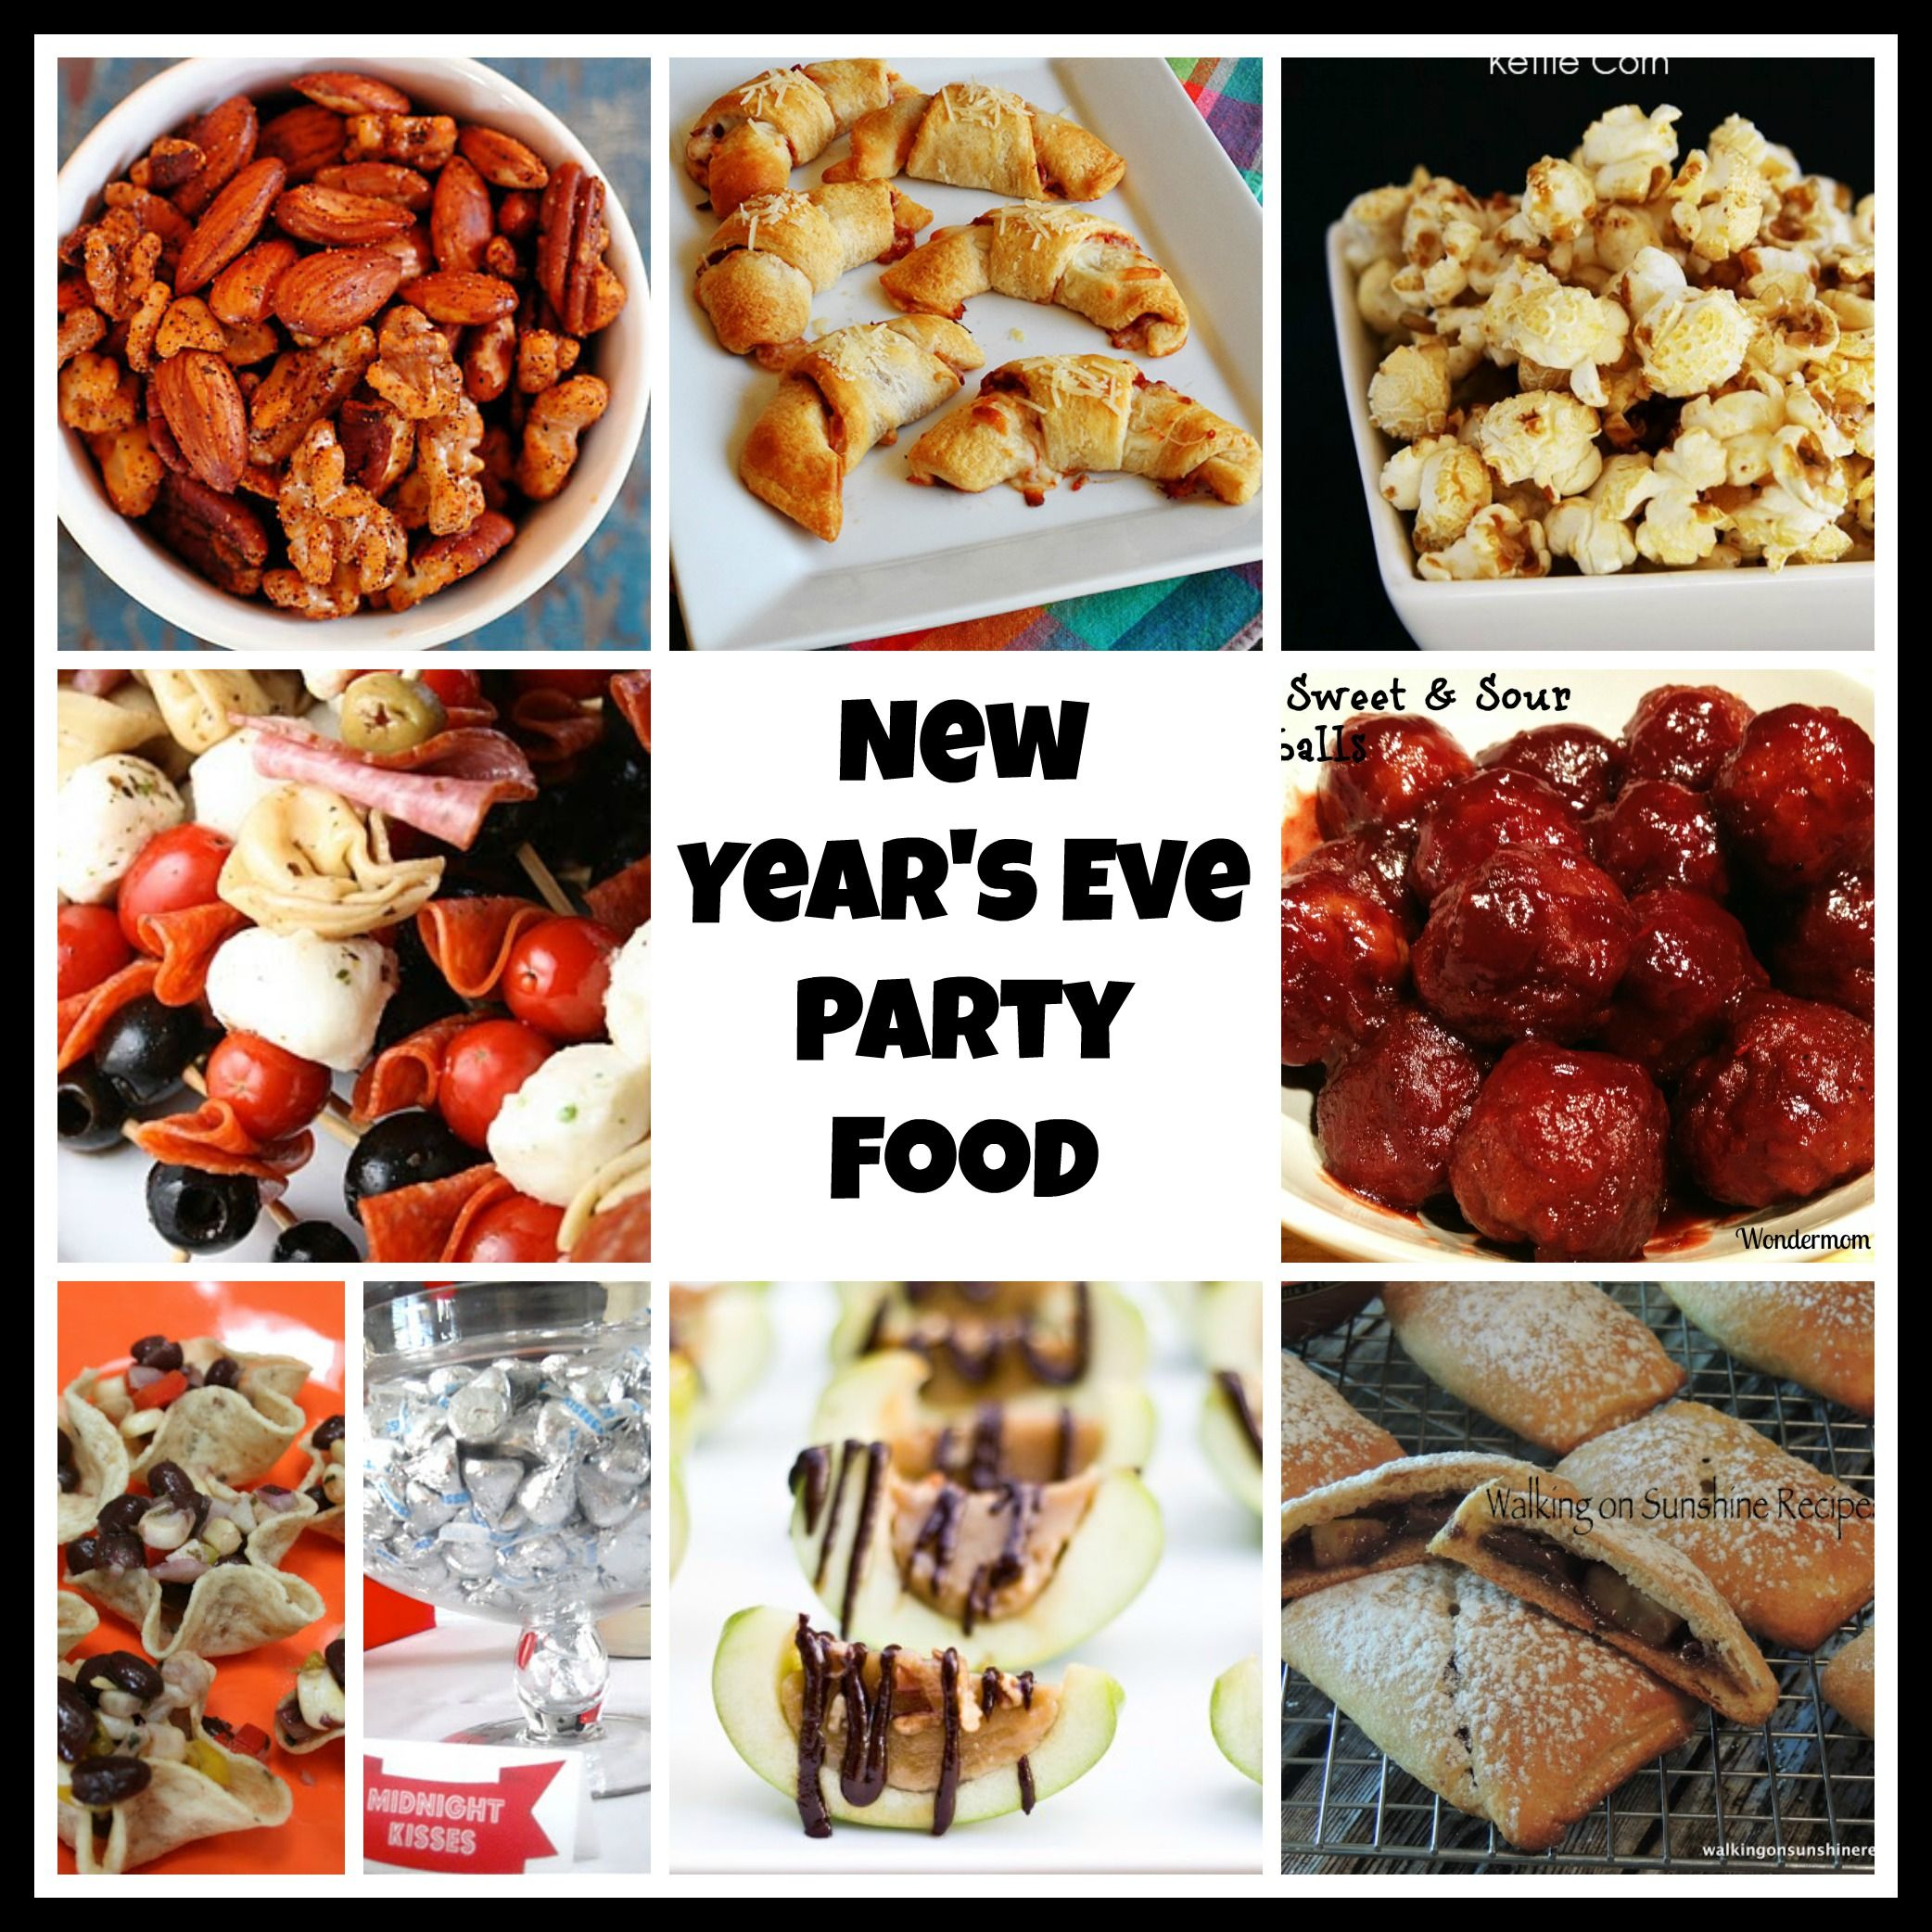 New years eve party ideas for teens wondermom wannabe munchies new years eve party ideas for teens wondermom wannabe forumfinder Images